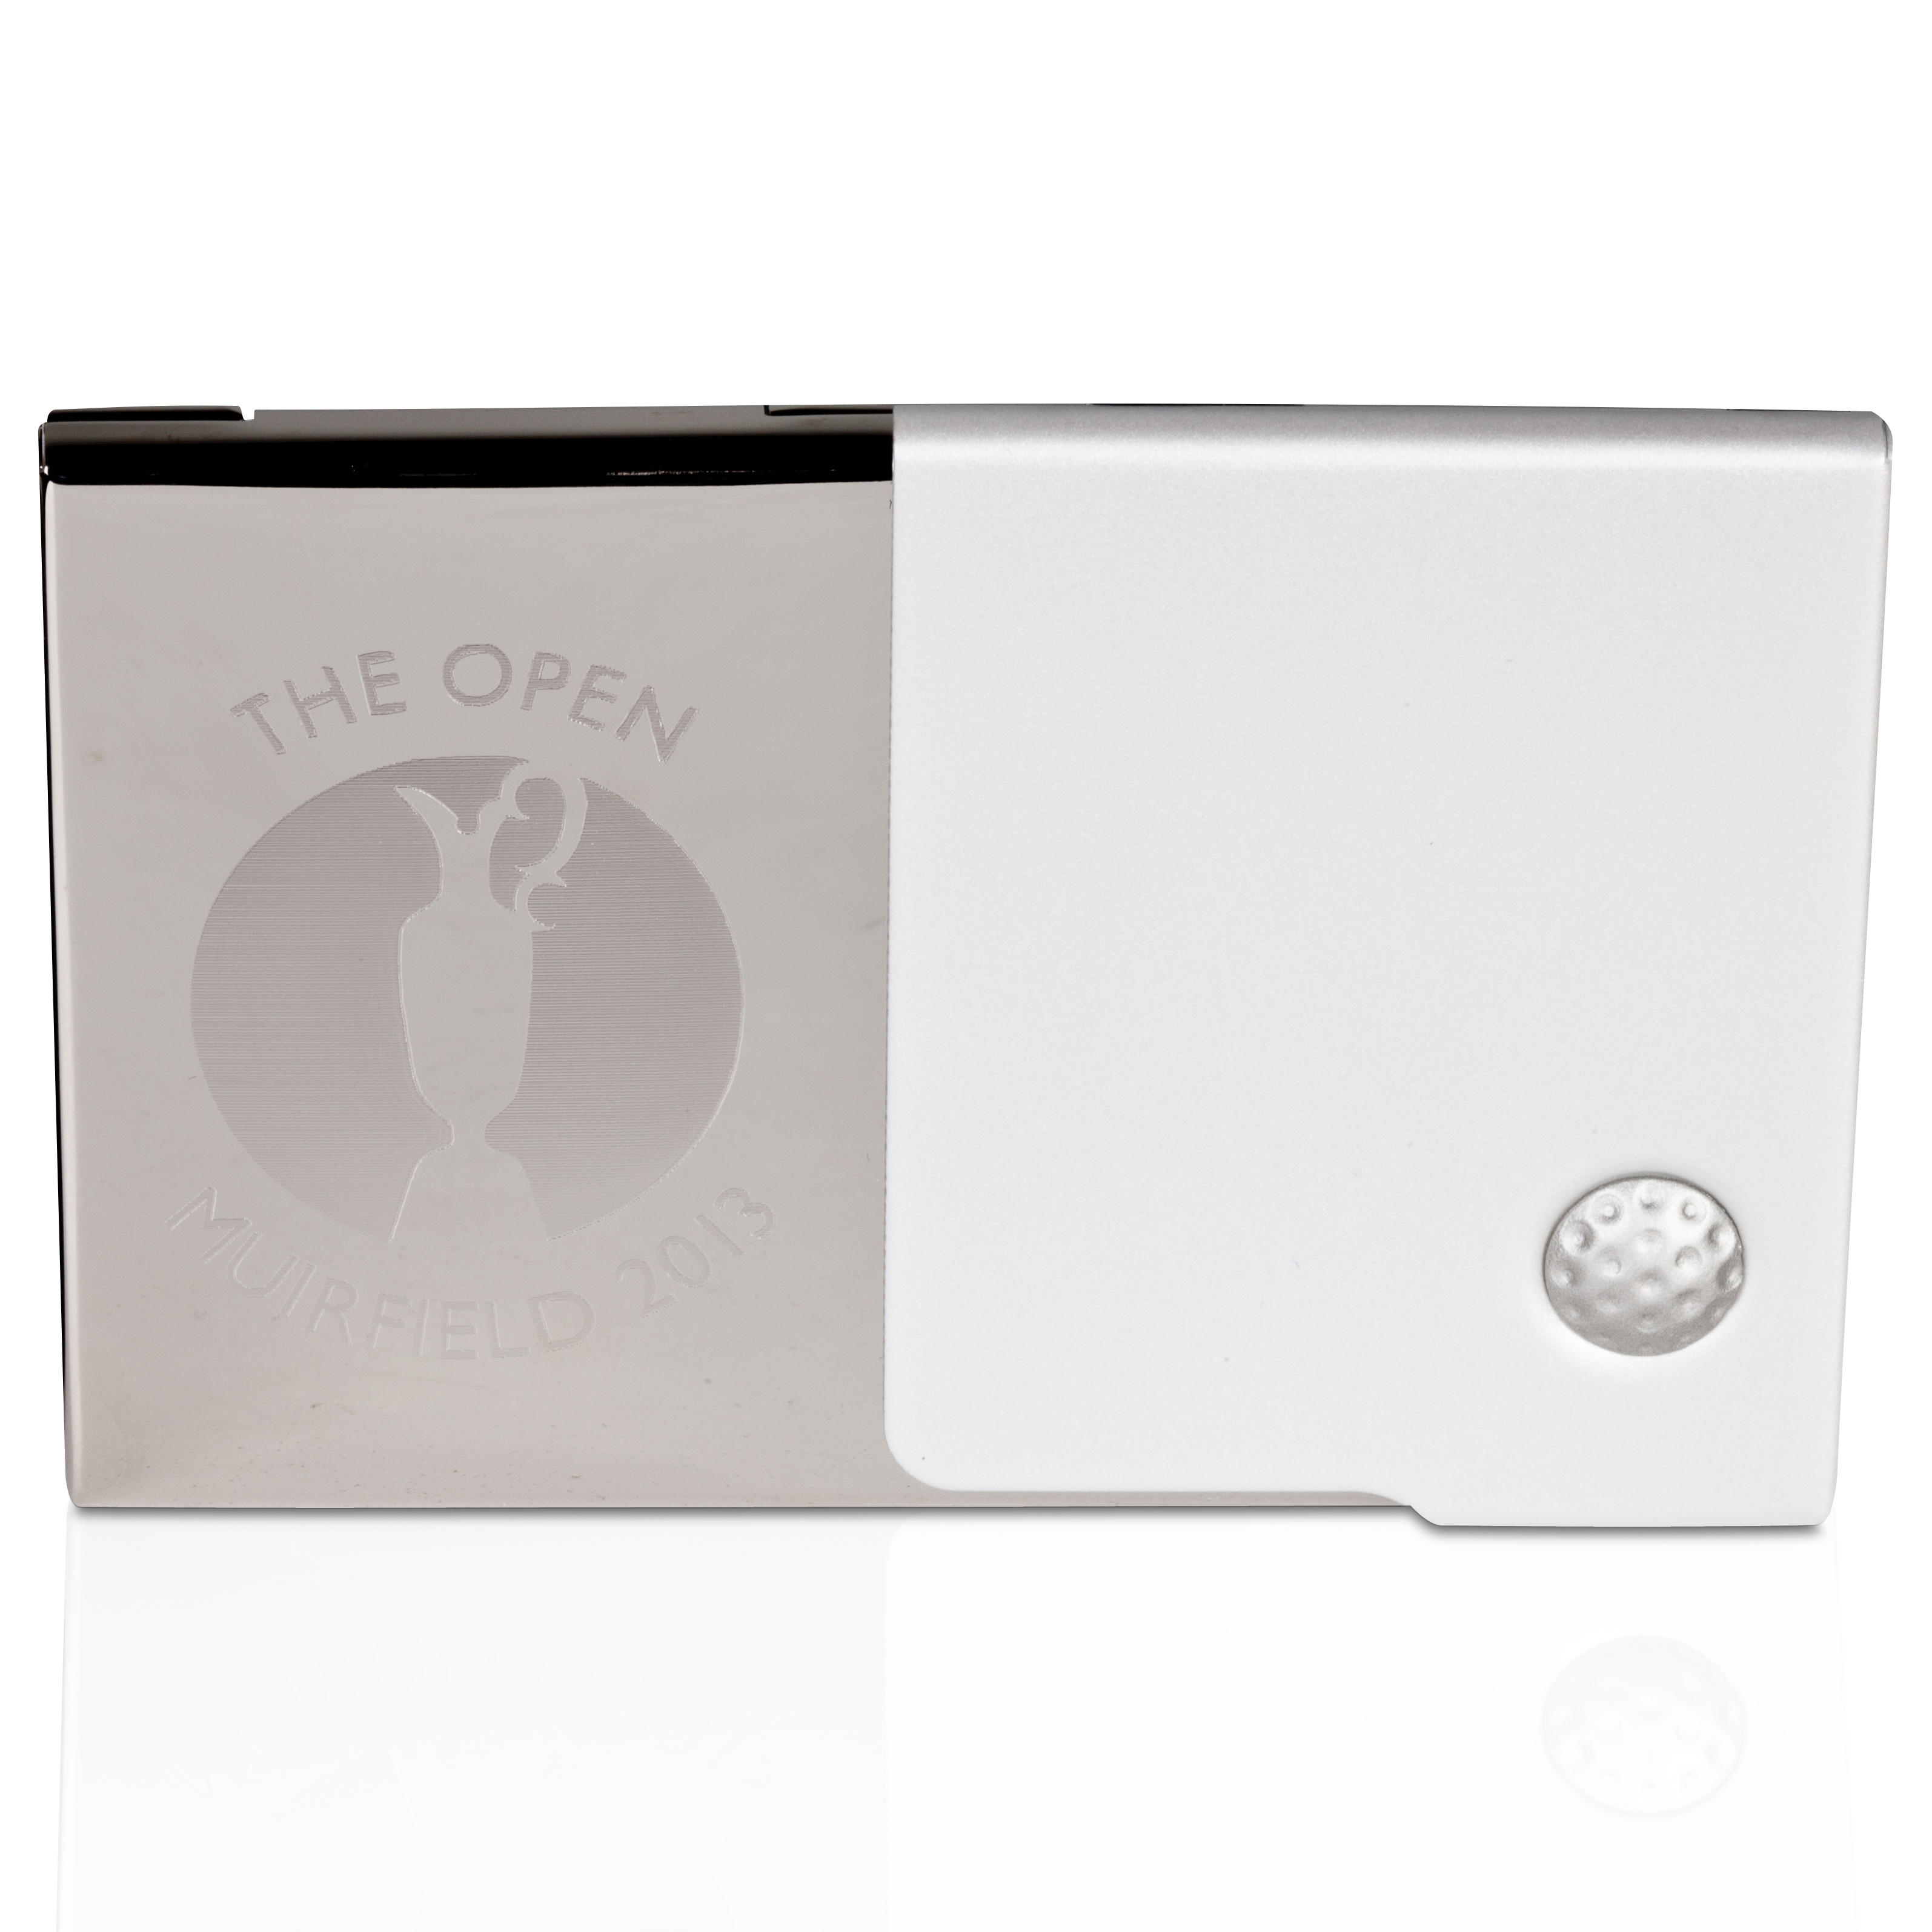 The Open Championship 2013 Muirfield Golf Business Card Case